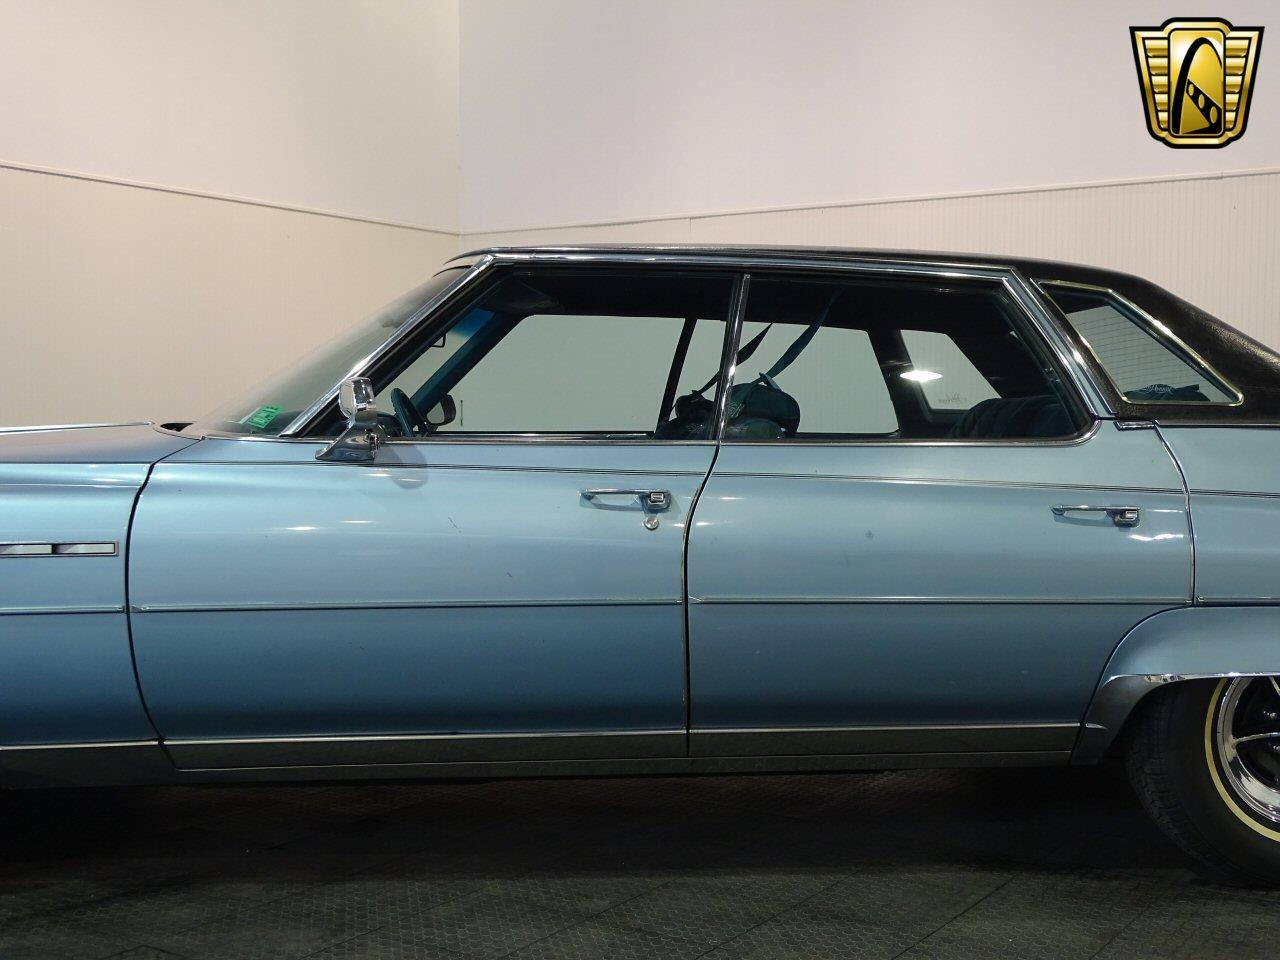 Classic Cars For Sale Indianapolis Indiana